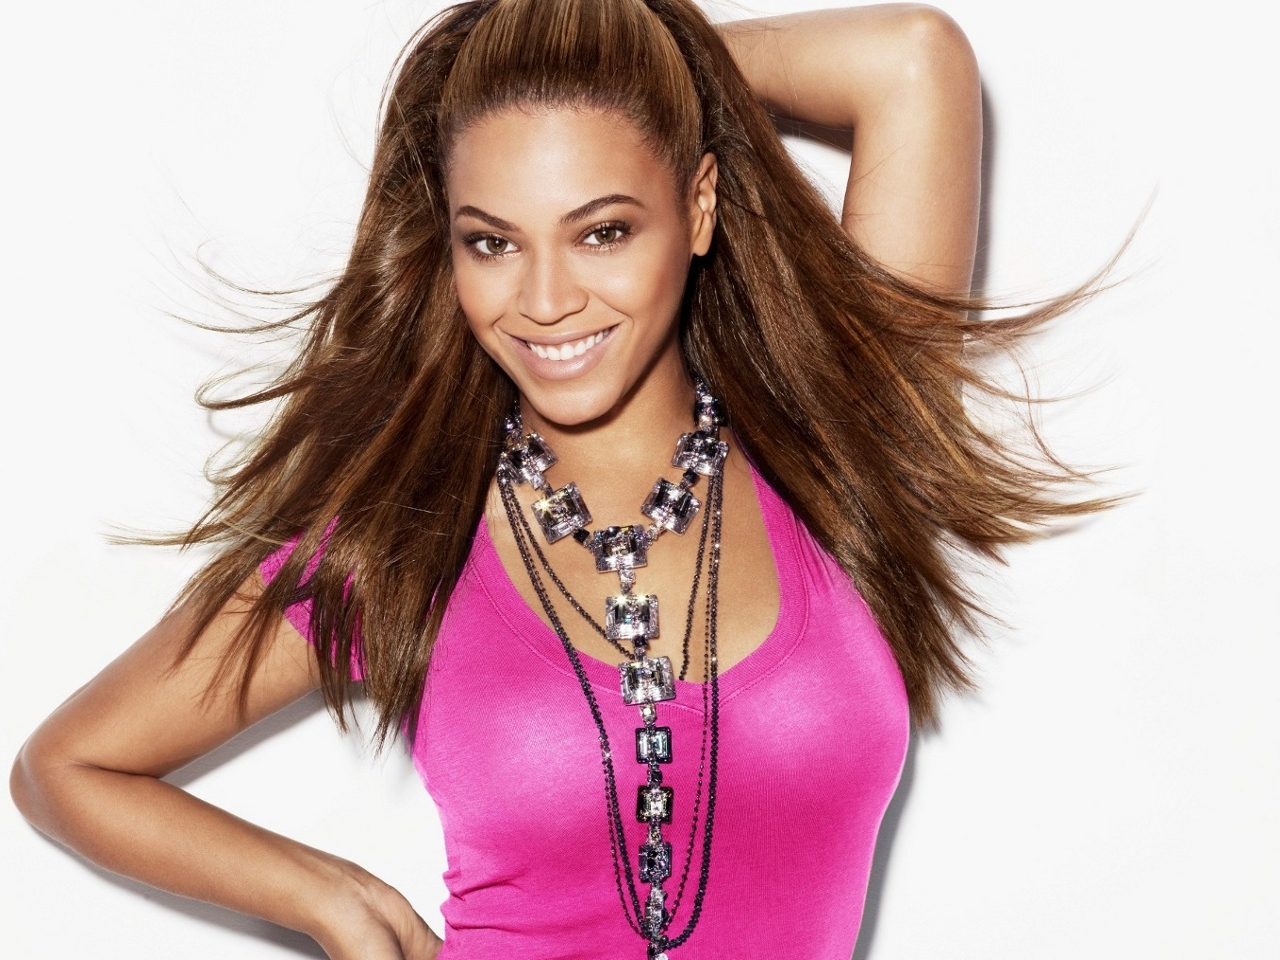 beyonce images beyonce wallpaper photos 32537923